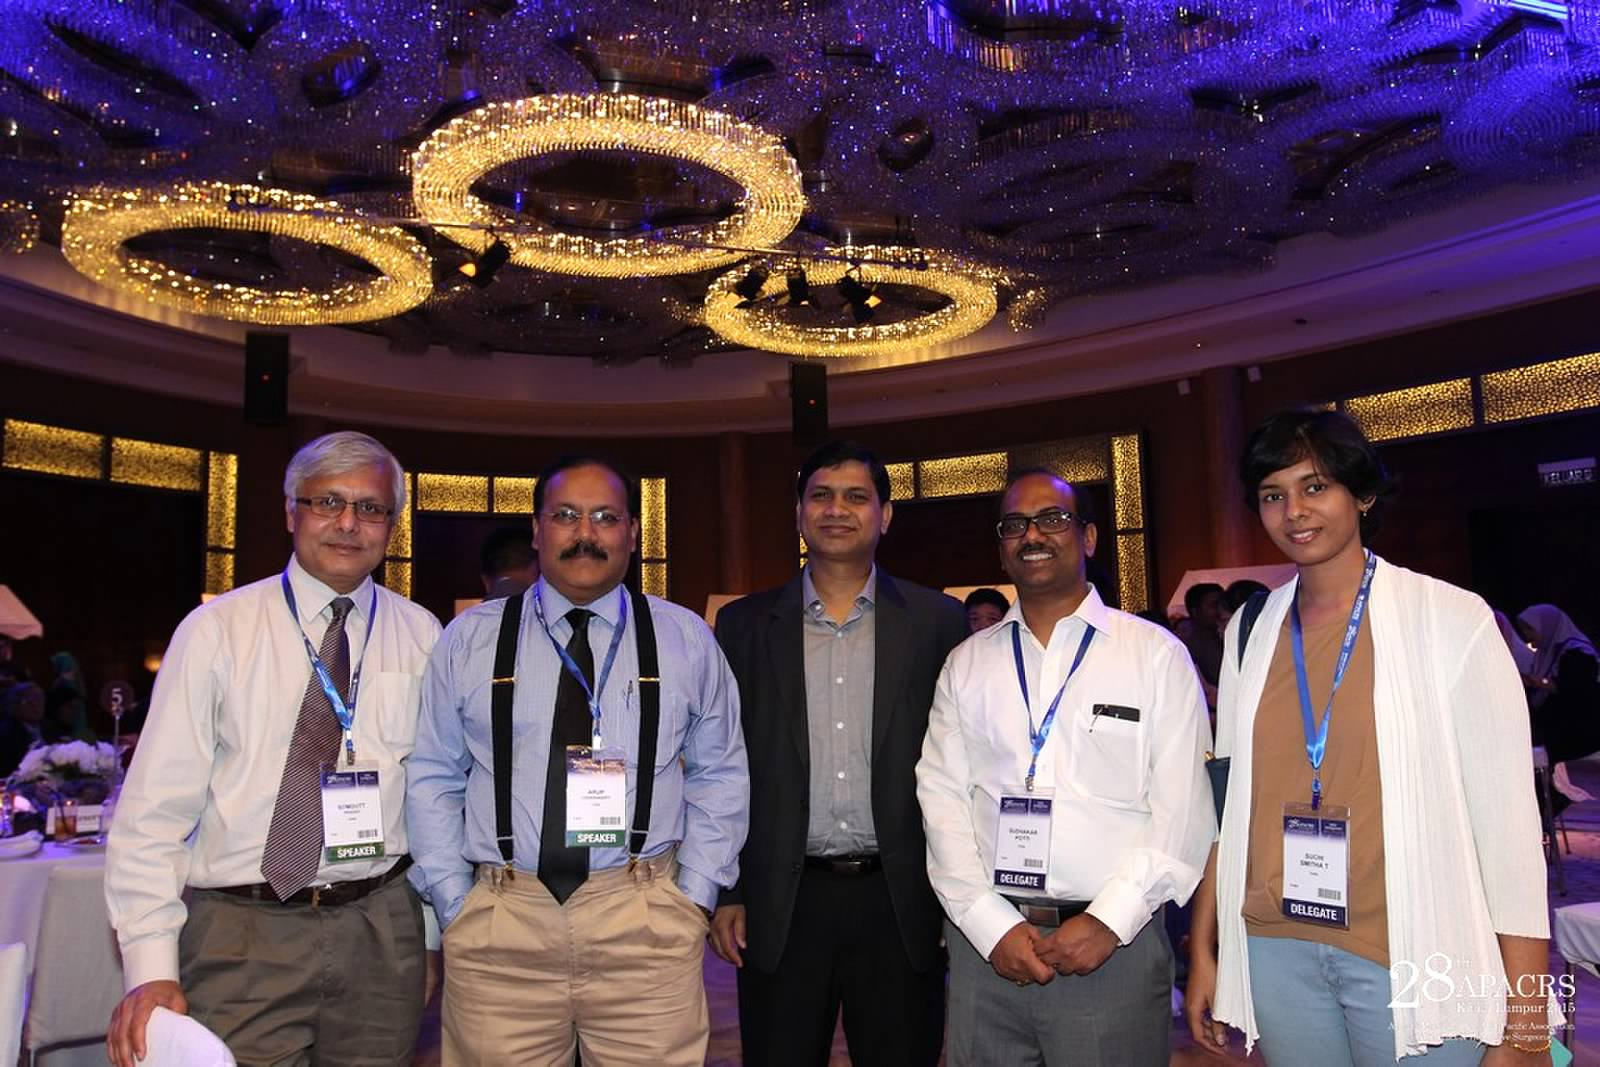 Dr Somdutt Prasad with other speakers at the APACRS conference in Kuala Lumpur